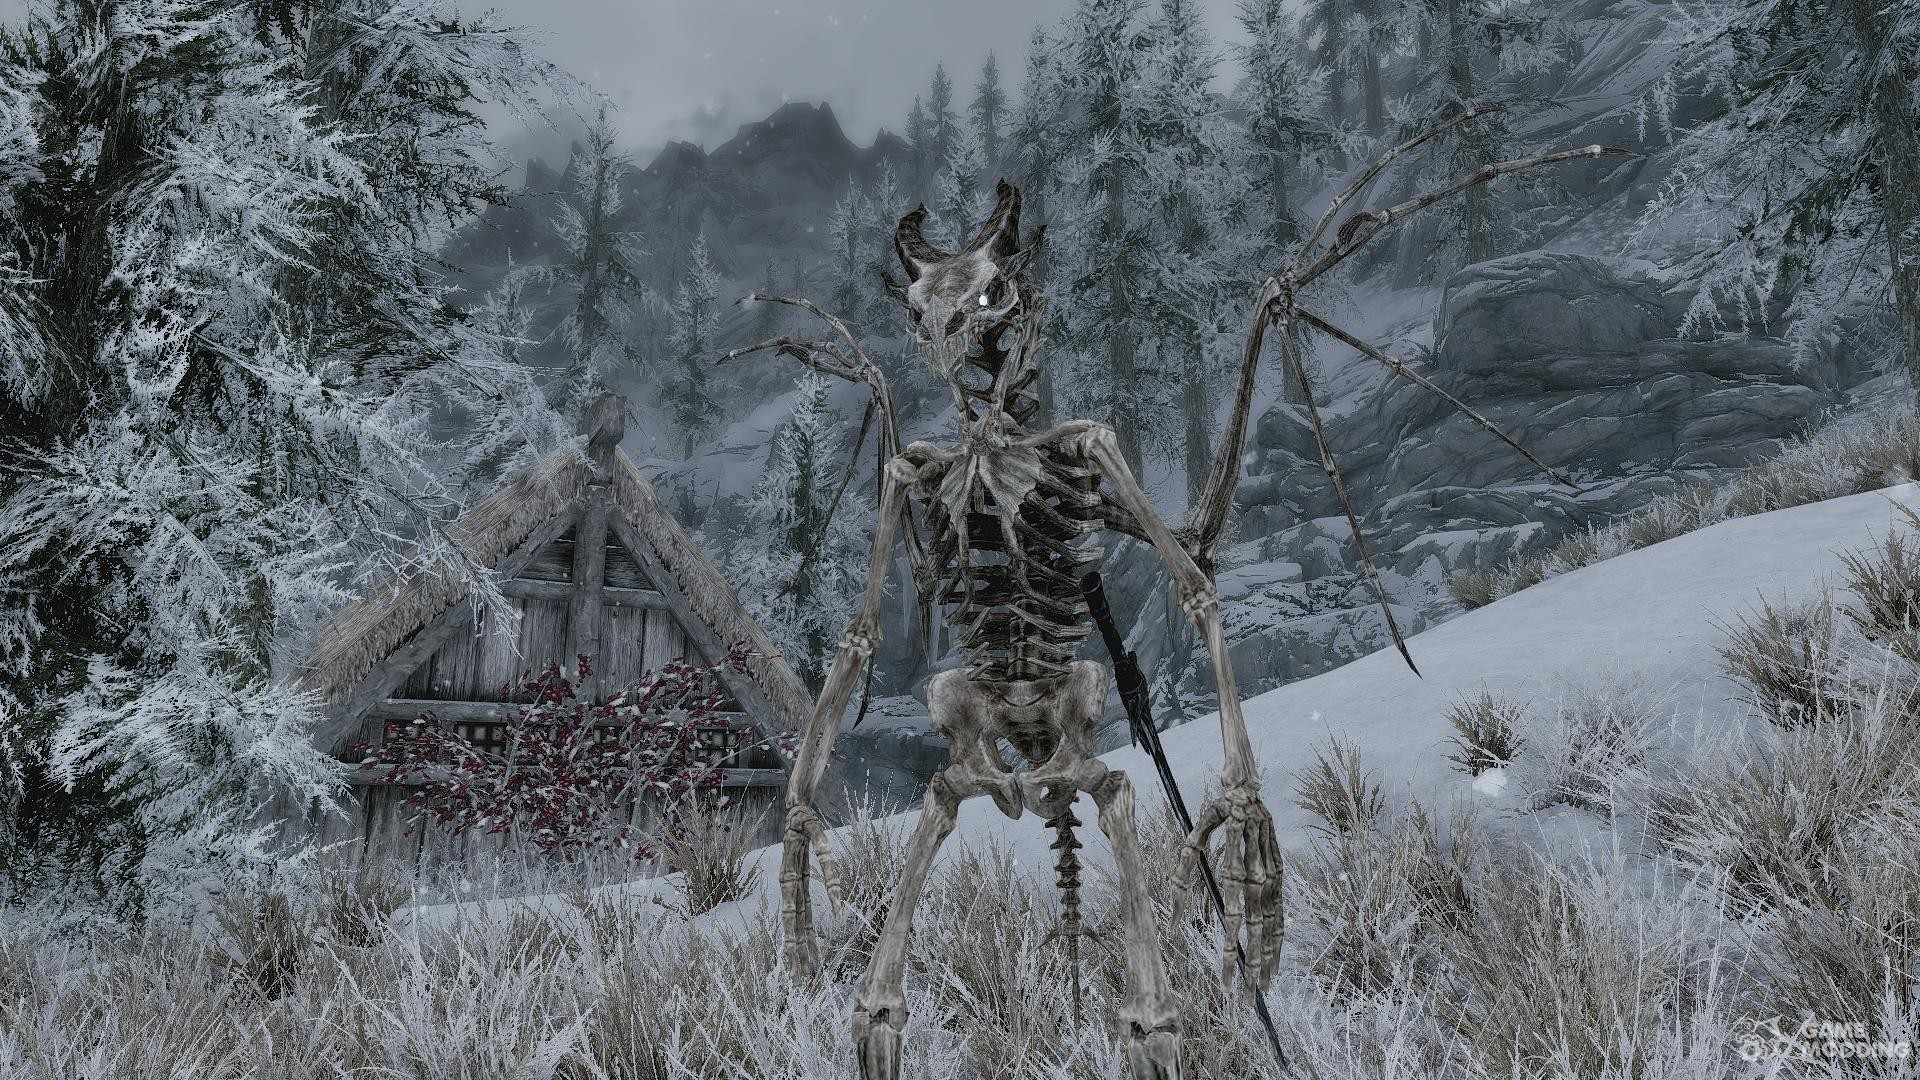 Summon Creatures of the Hell - Mounts and Followers for TES V Skyrim